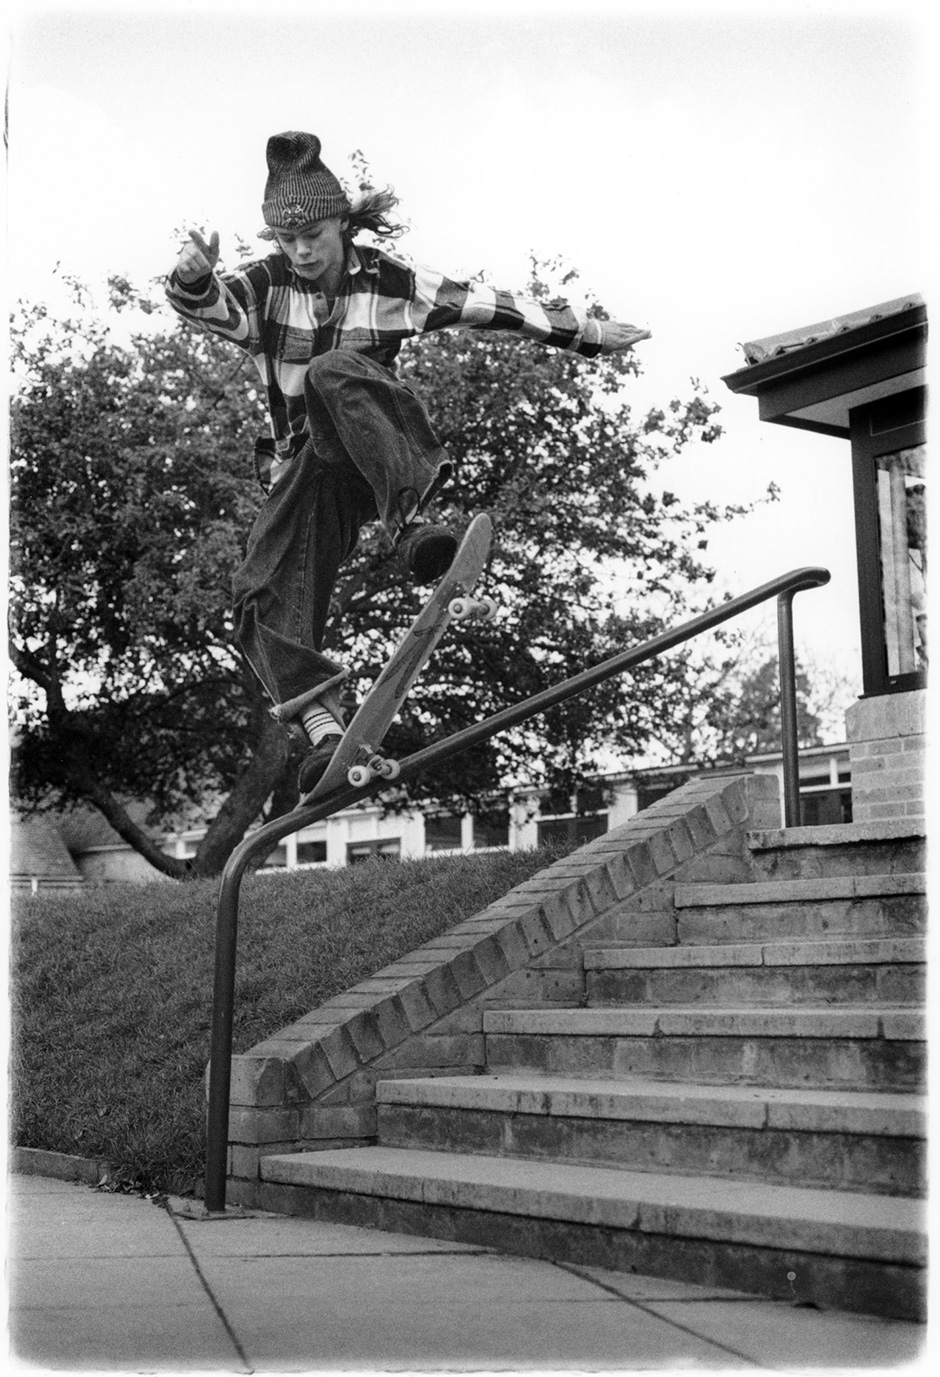 Gonz inspired picture perfect frontside noseblunt slide. In between regular jobs in 1994. Photo: Wig Worland. Inset Below Left - DJing at a Mowax party a few years later